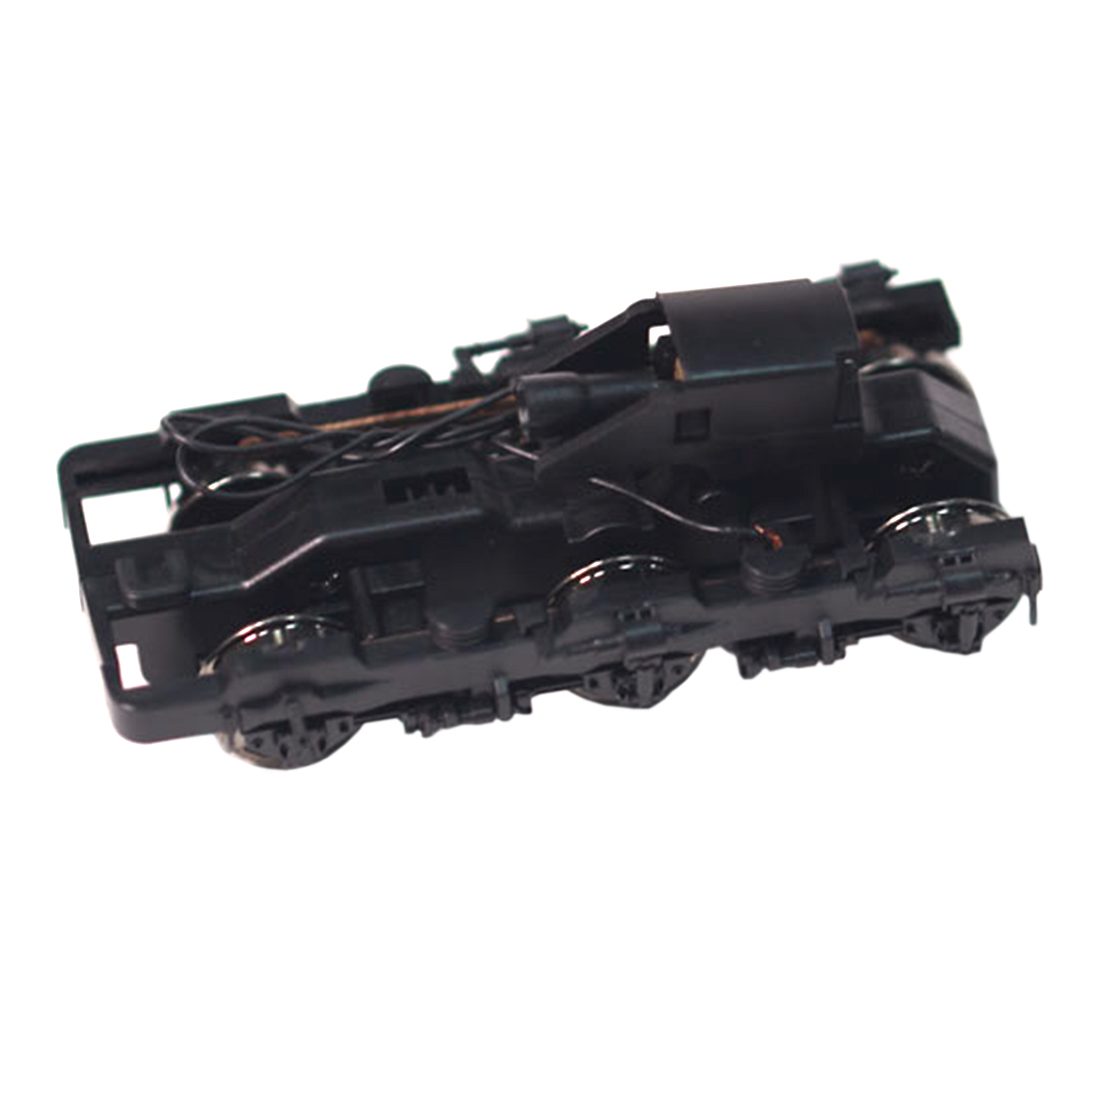 2.8 X 6.8cm(1.1 X 2.68 Inches)1:87 HO Scale Railway Layou Undercarriage Bogie For Most HO Scale Model Train